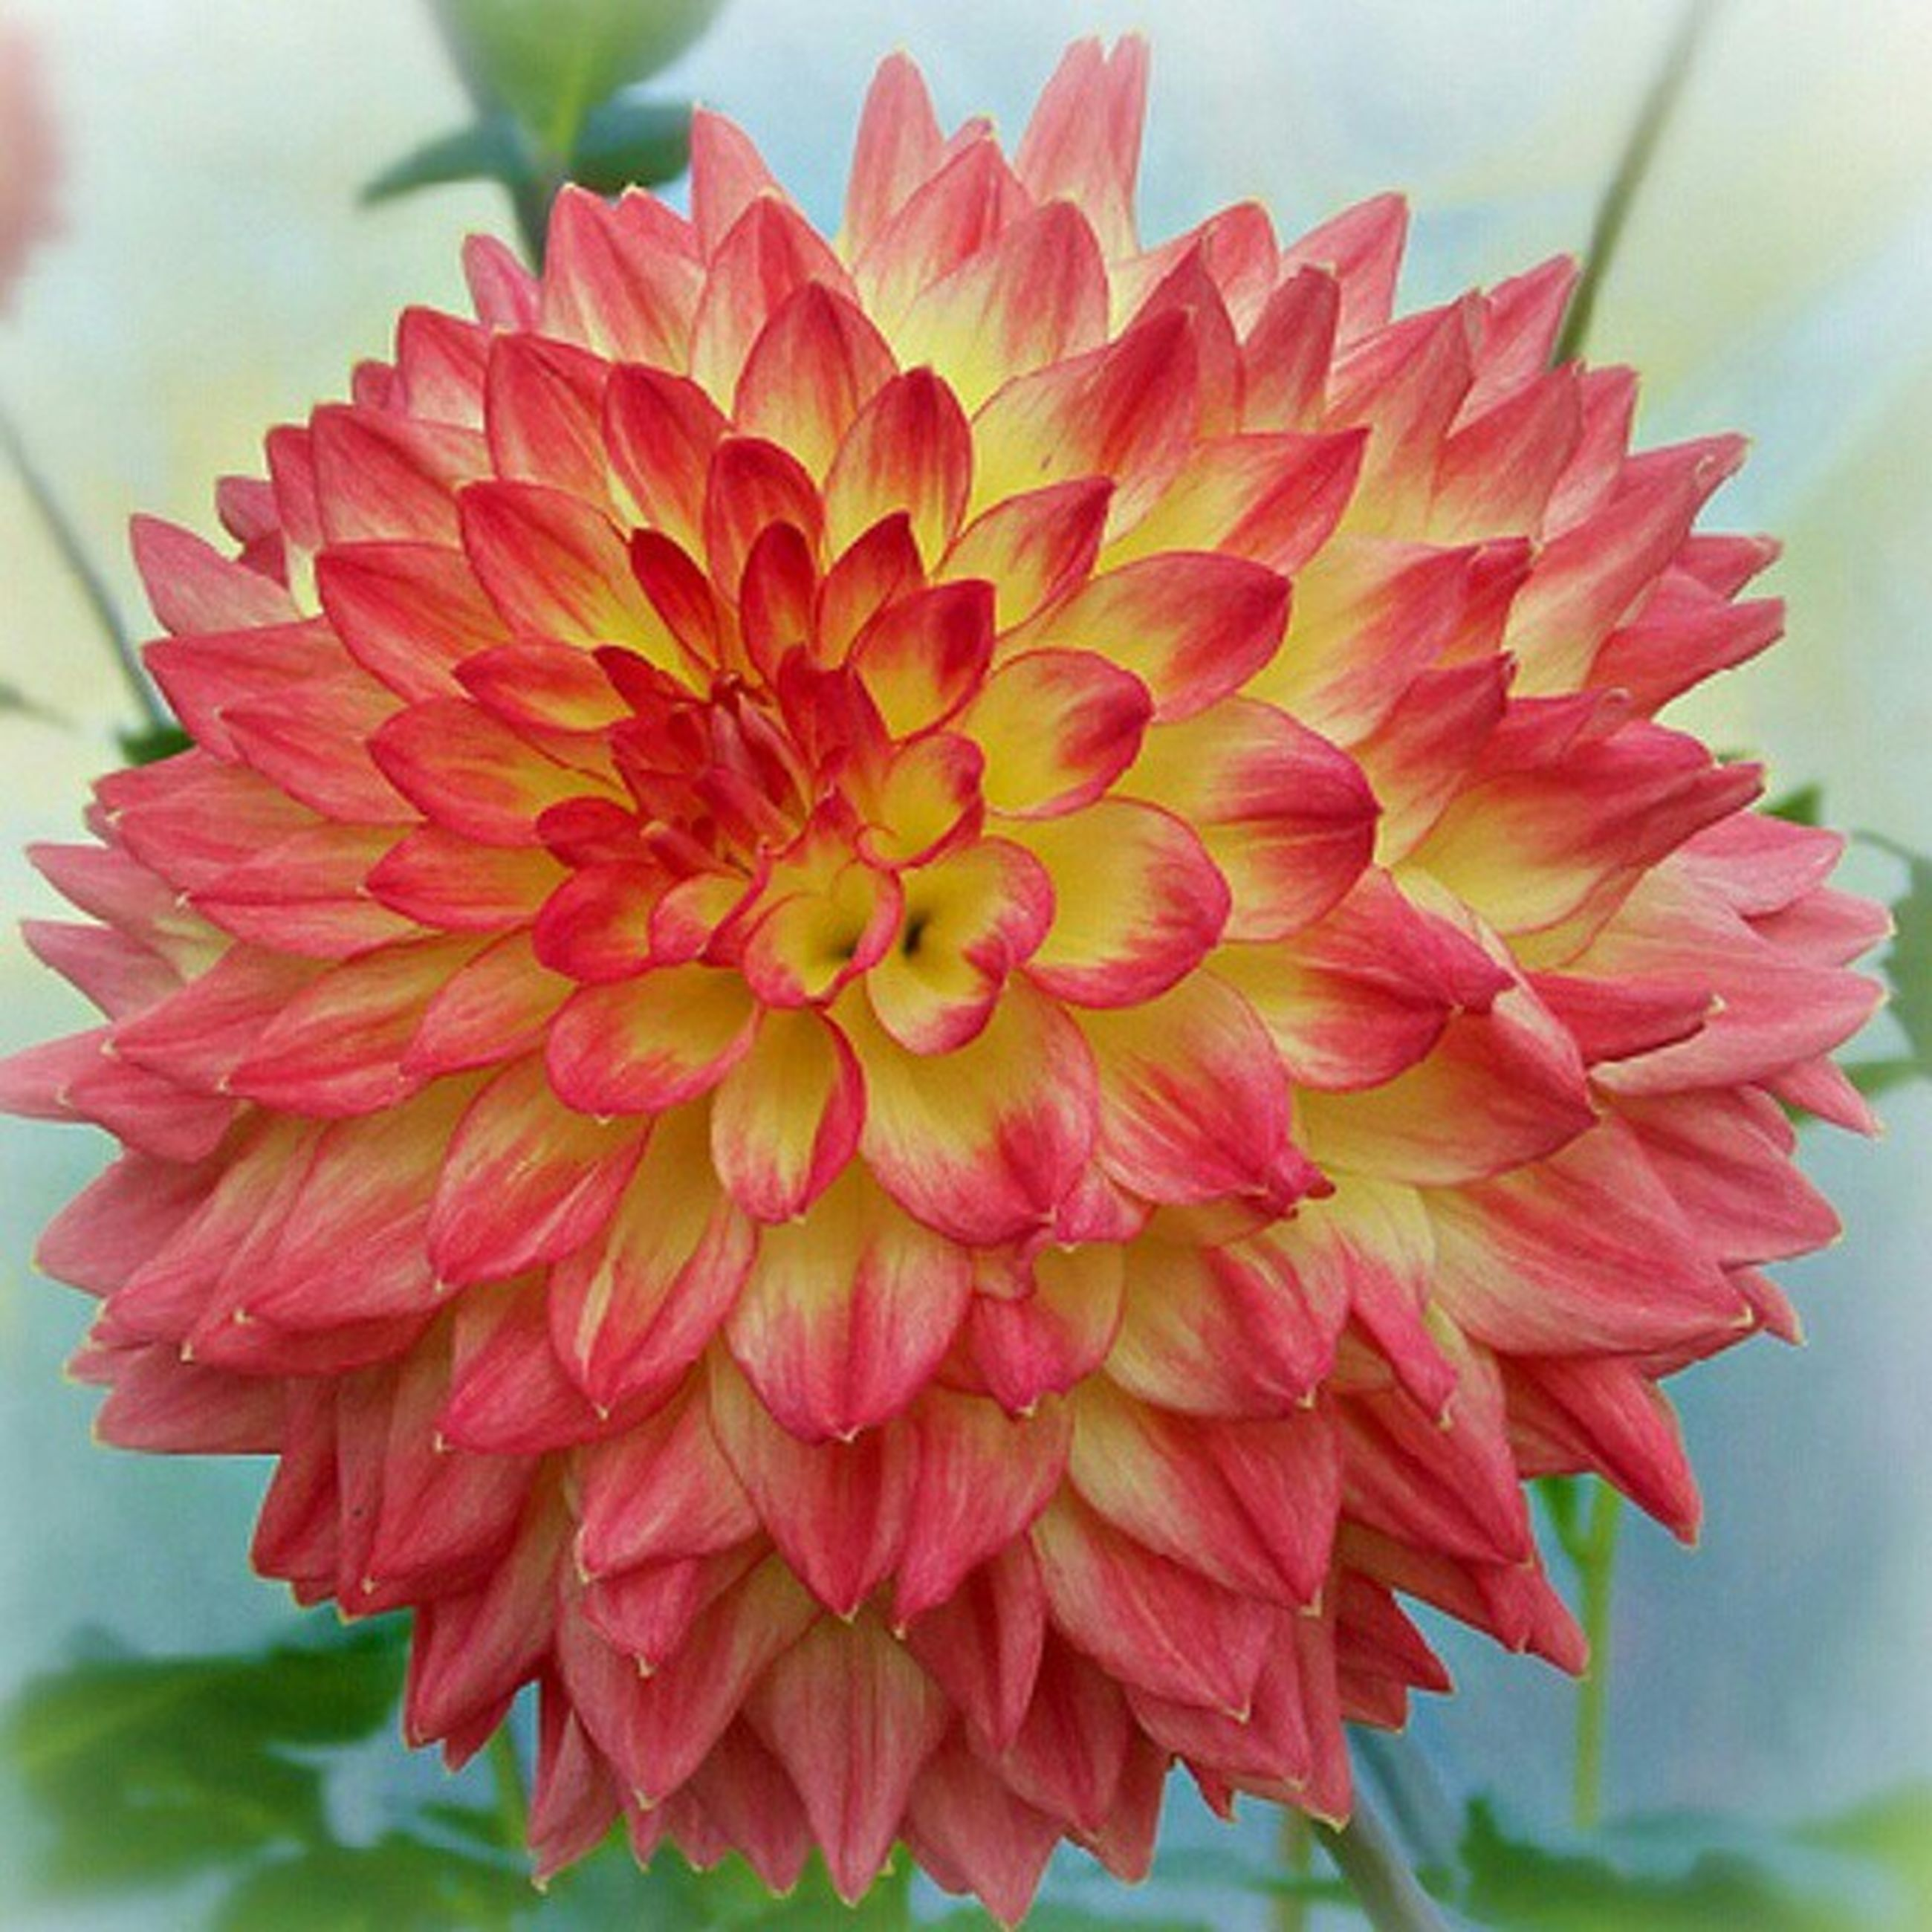 flower, petal, freshness, flower head, fragility, beauty in nature, close-up, growth, red, focus on foreground, blooming, nature, single flower, plant, in bloom, day, no people, blossom, dahlia, orange color